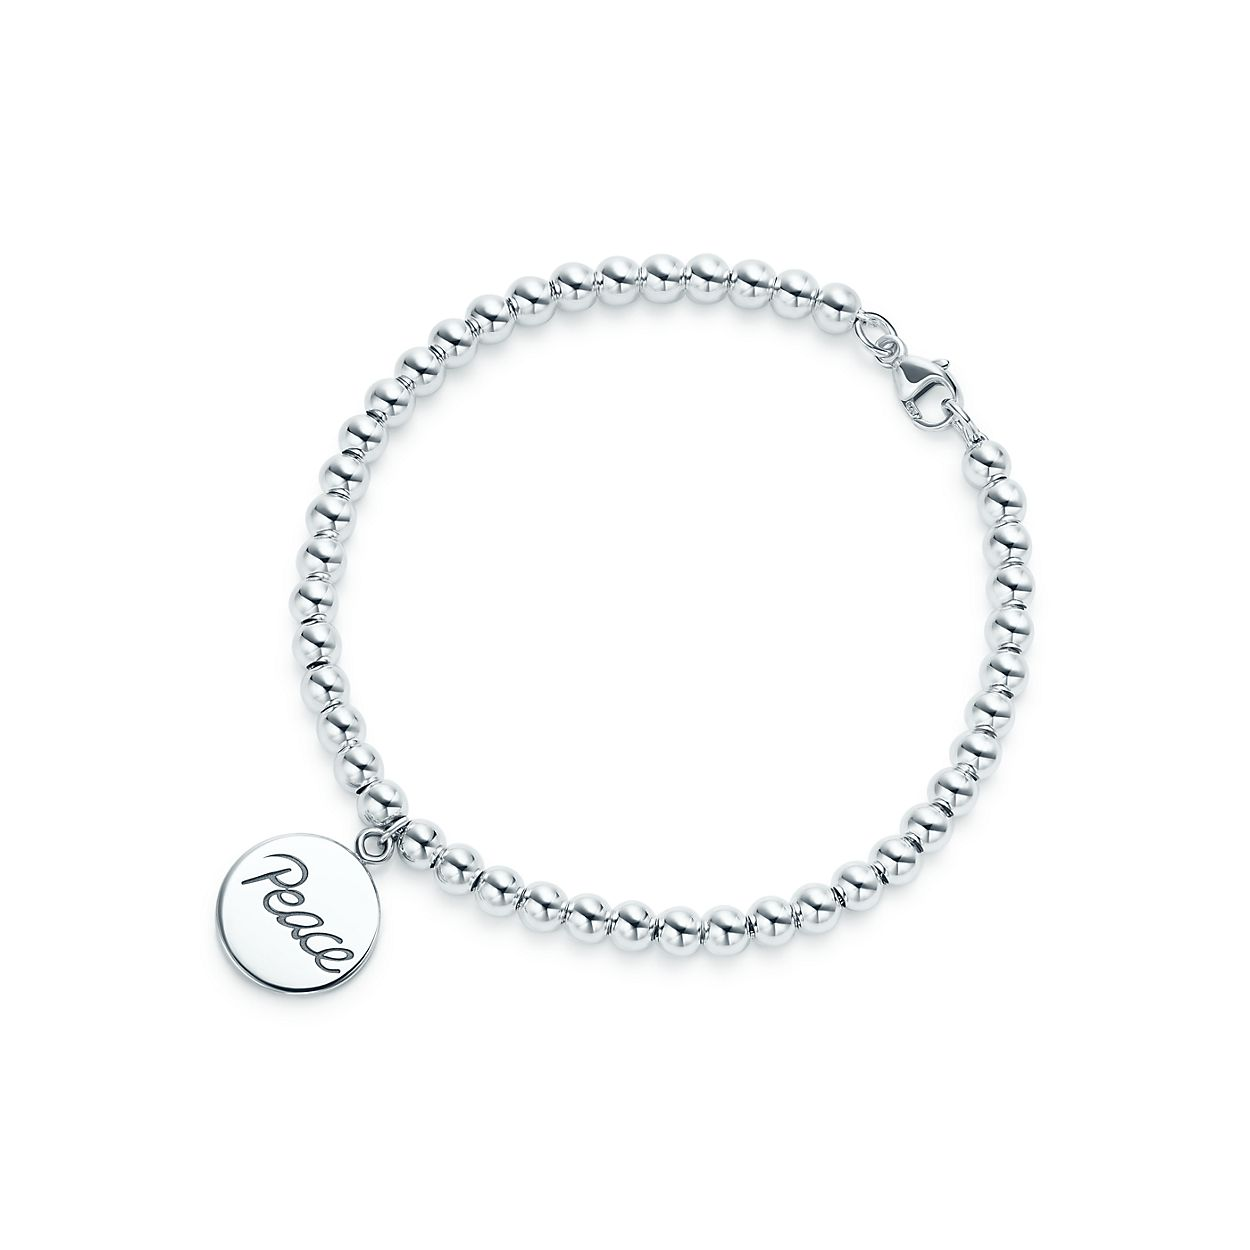 Palomas Graffiti love tag in sterling silver on a bead bracelet, small Tiffany & Co.